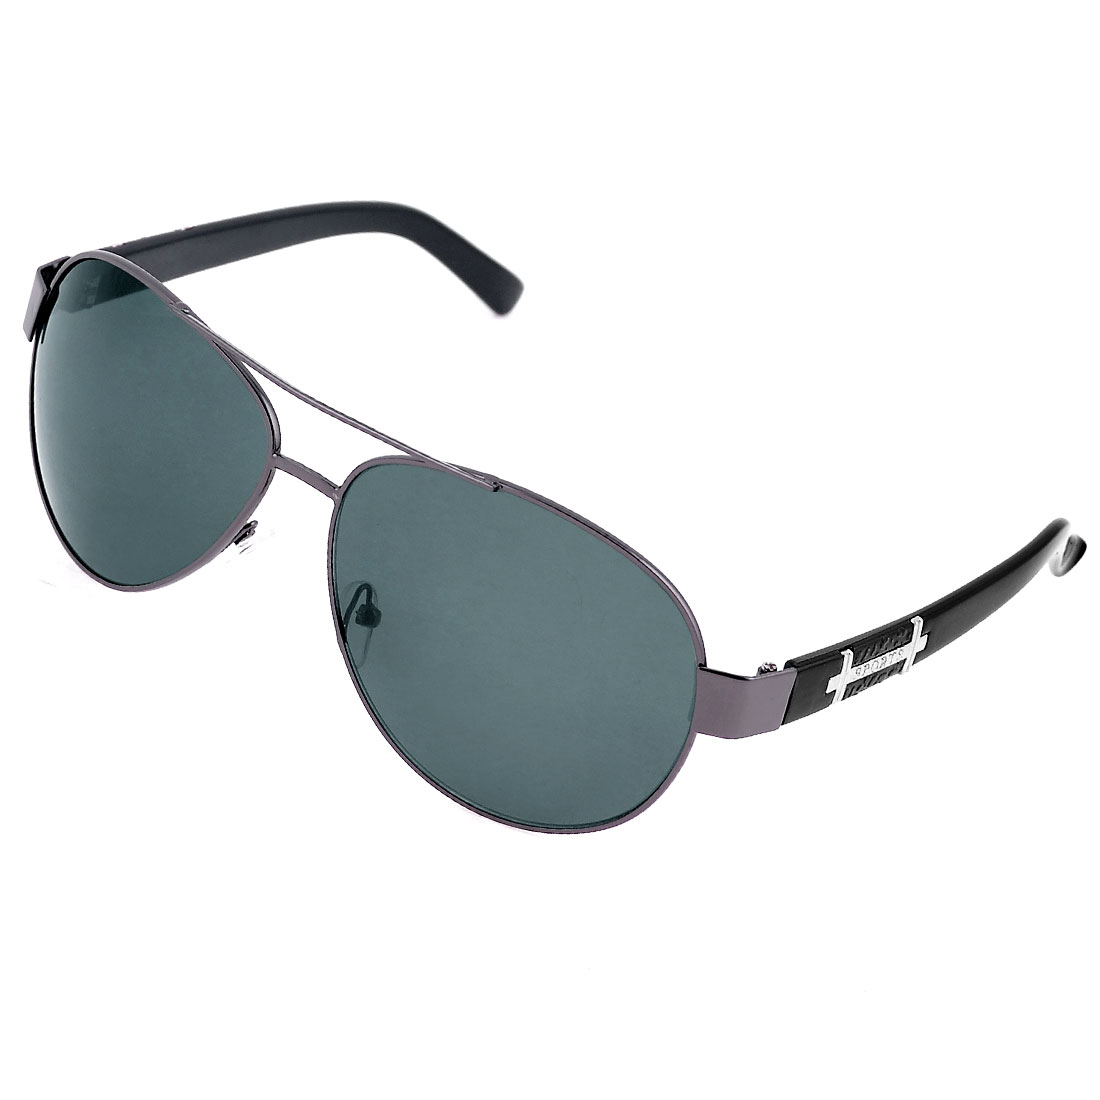 Water Drop Lens Dual Bridge Metal Full Frame Rim Sunglasses for Men